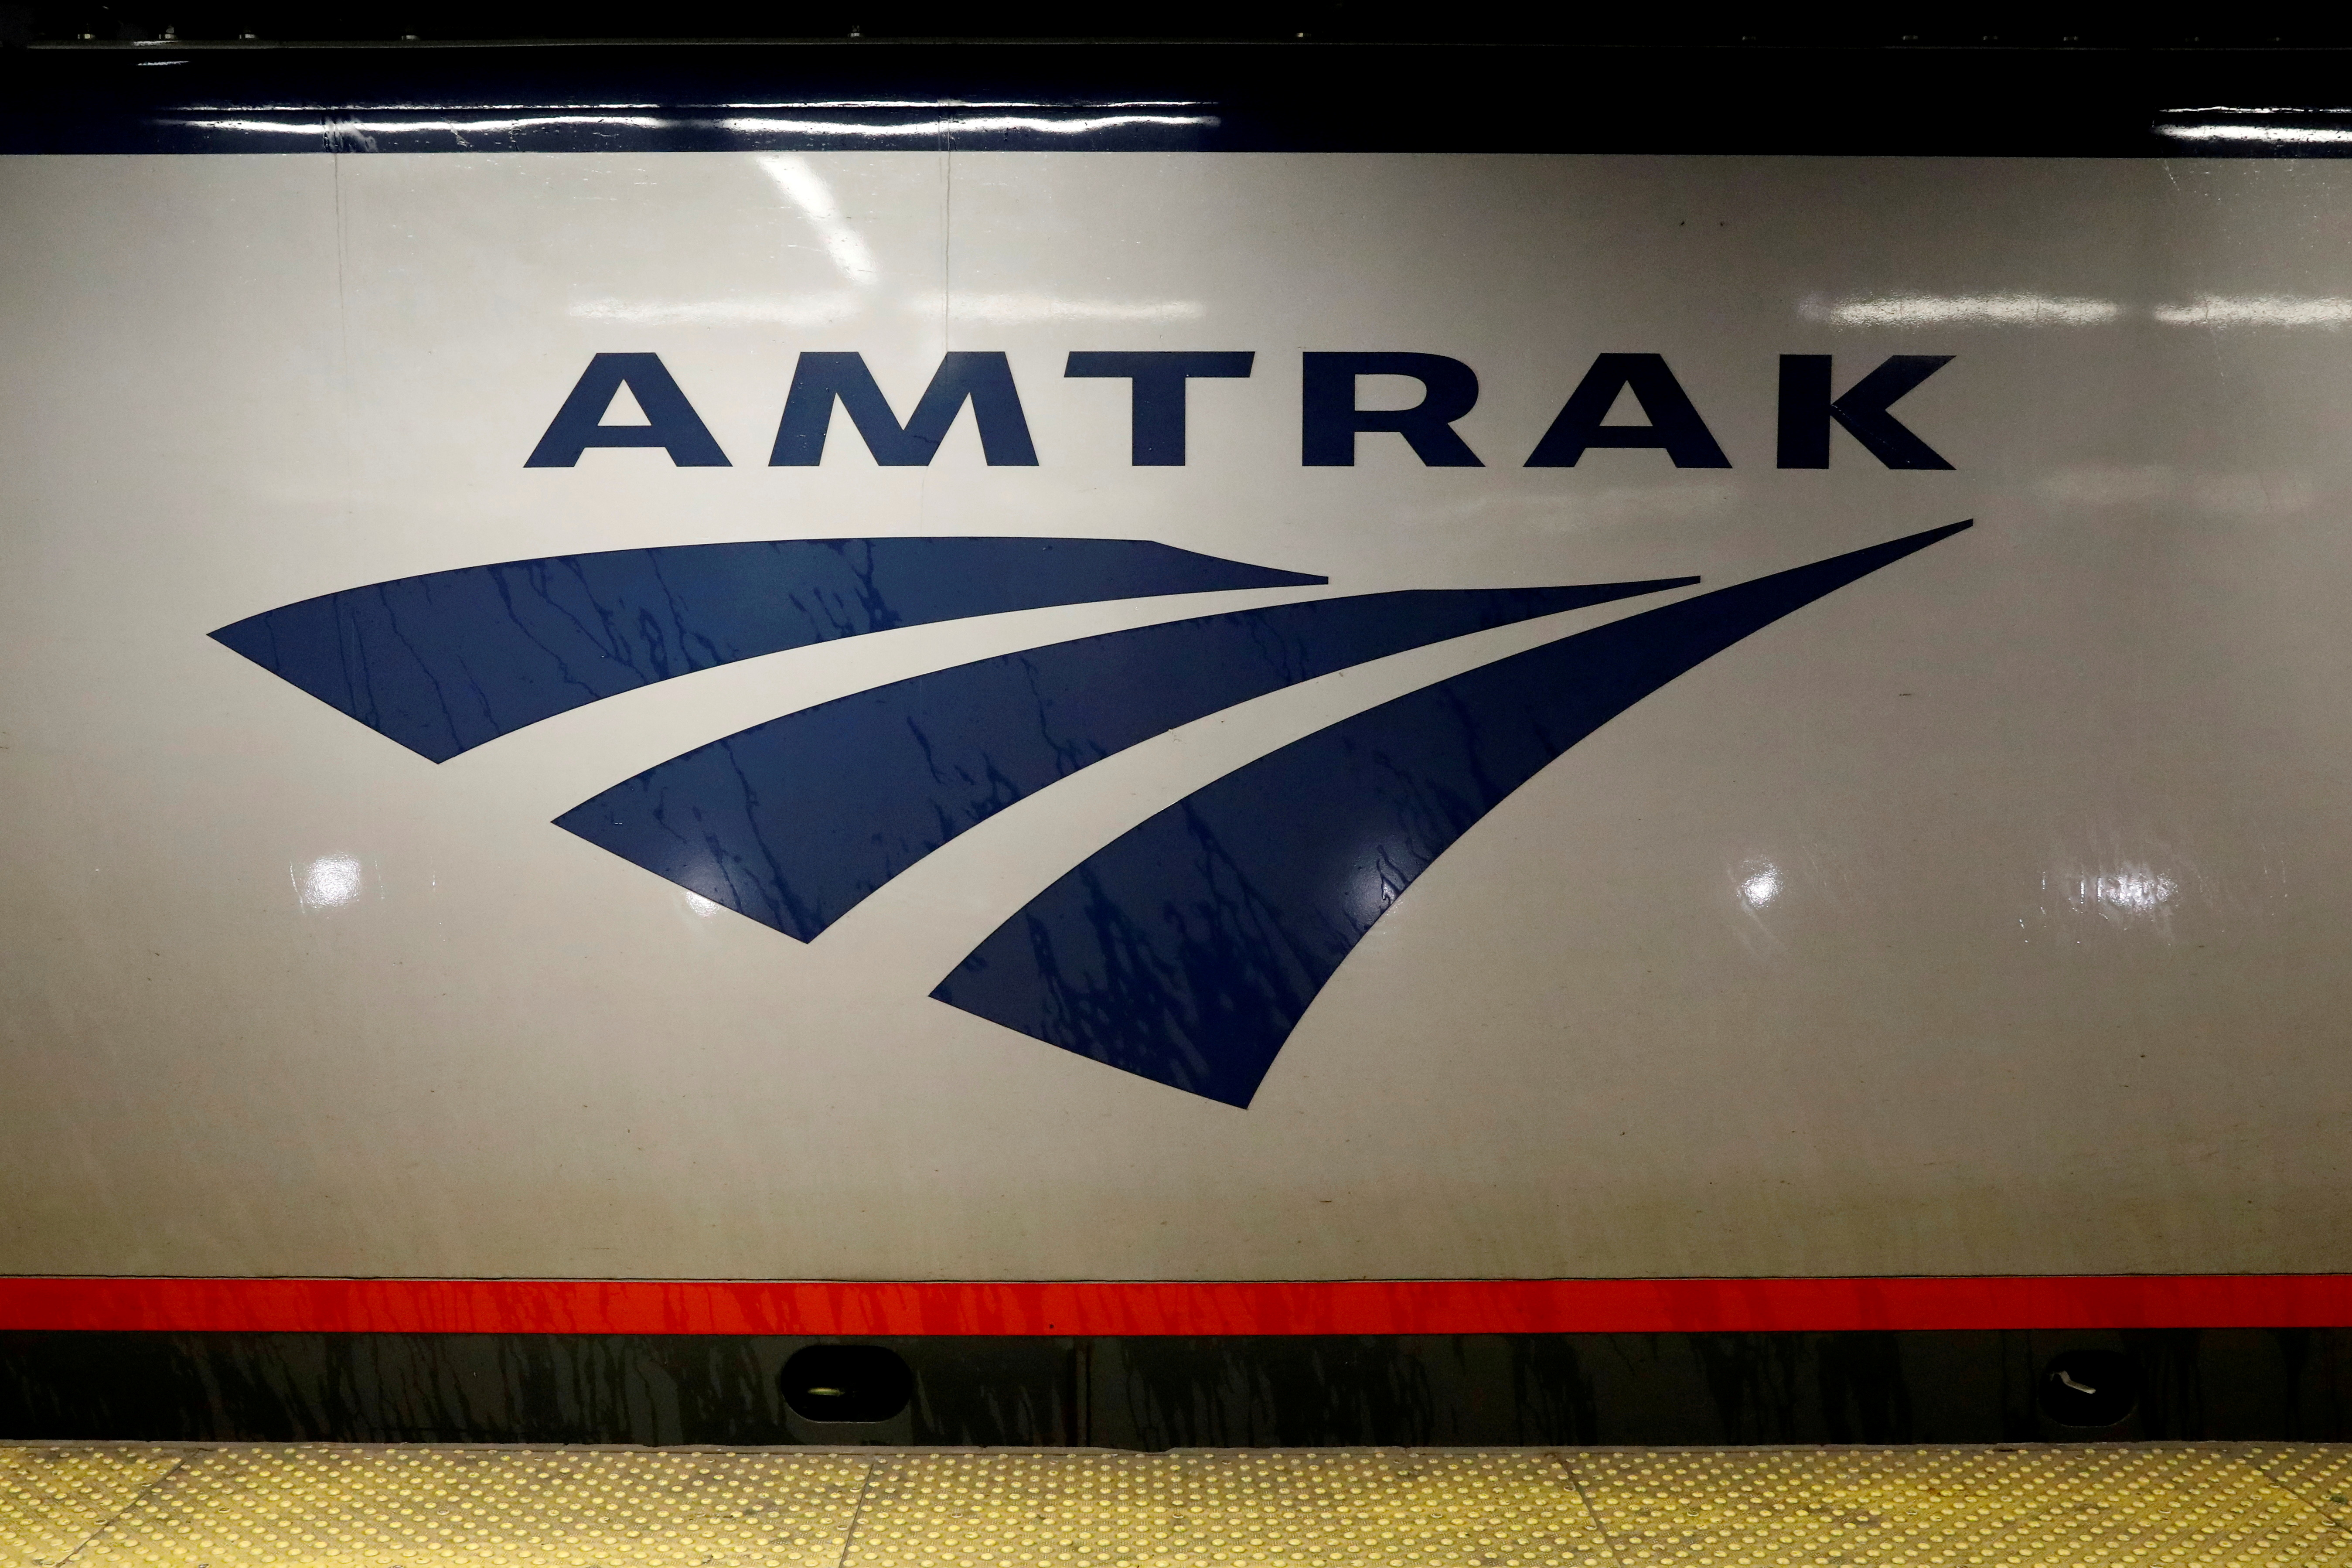 An Amtrak train is parked at the platform inside New York's Penn Station, the nation's busiest train hub, July 7, 2017. REUTERS/Brendan McDermid/File Photo